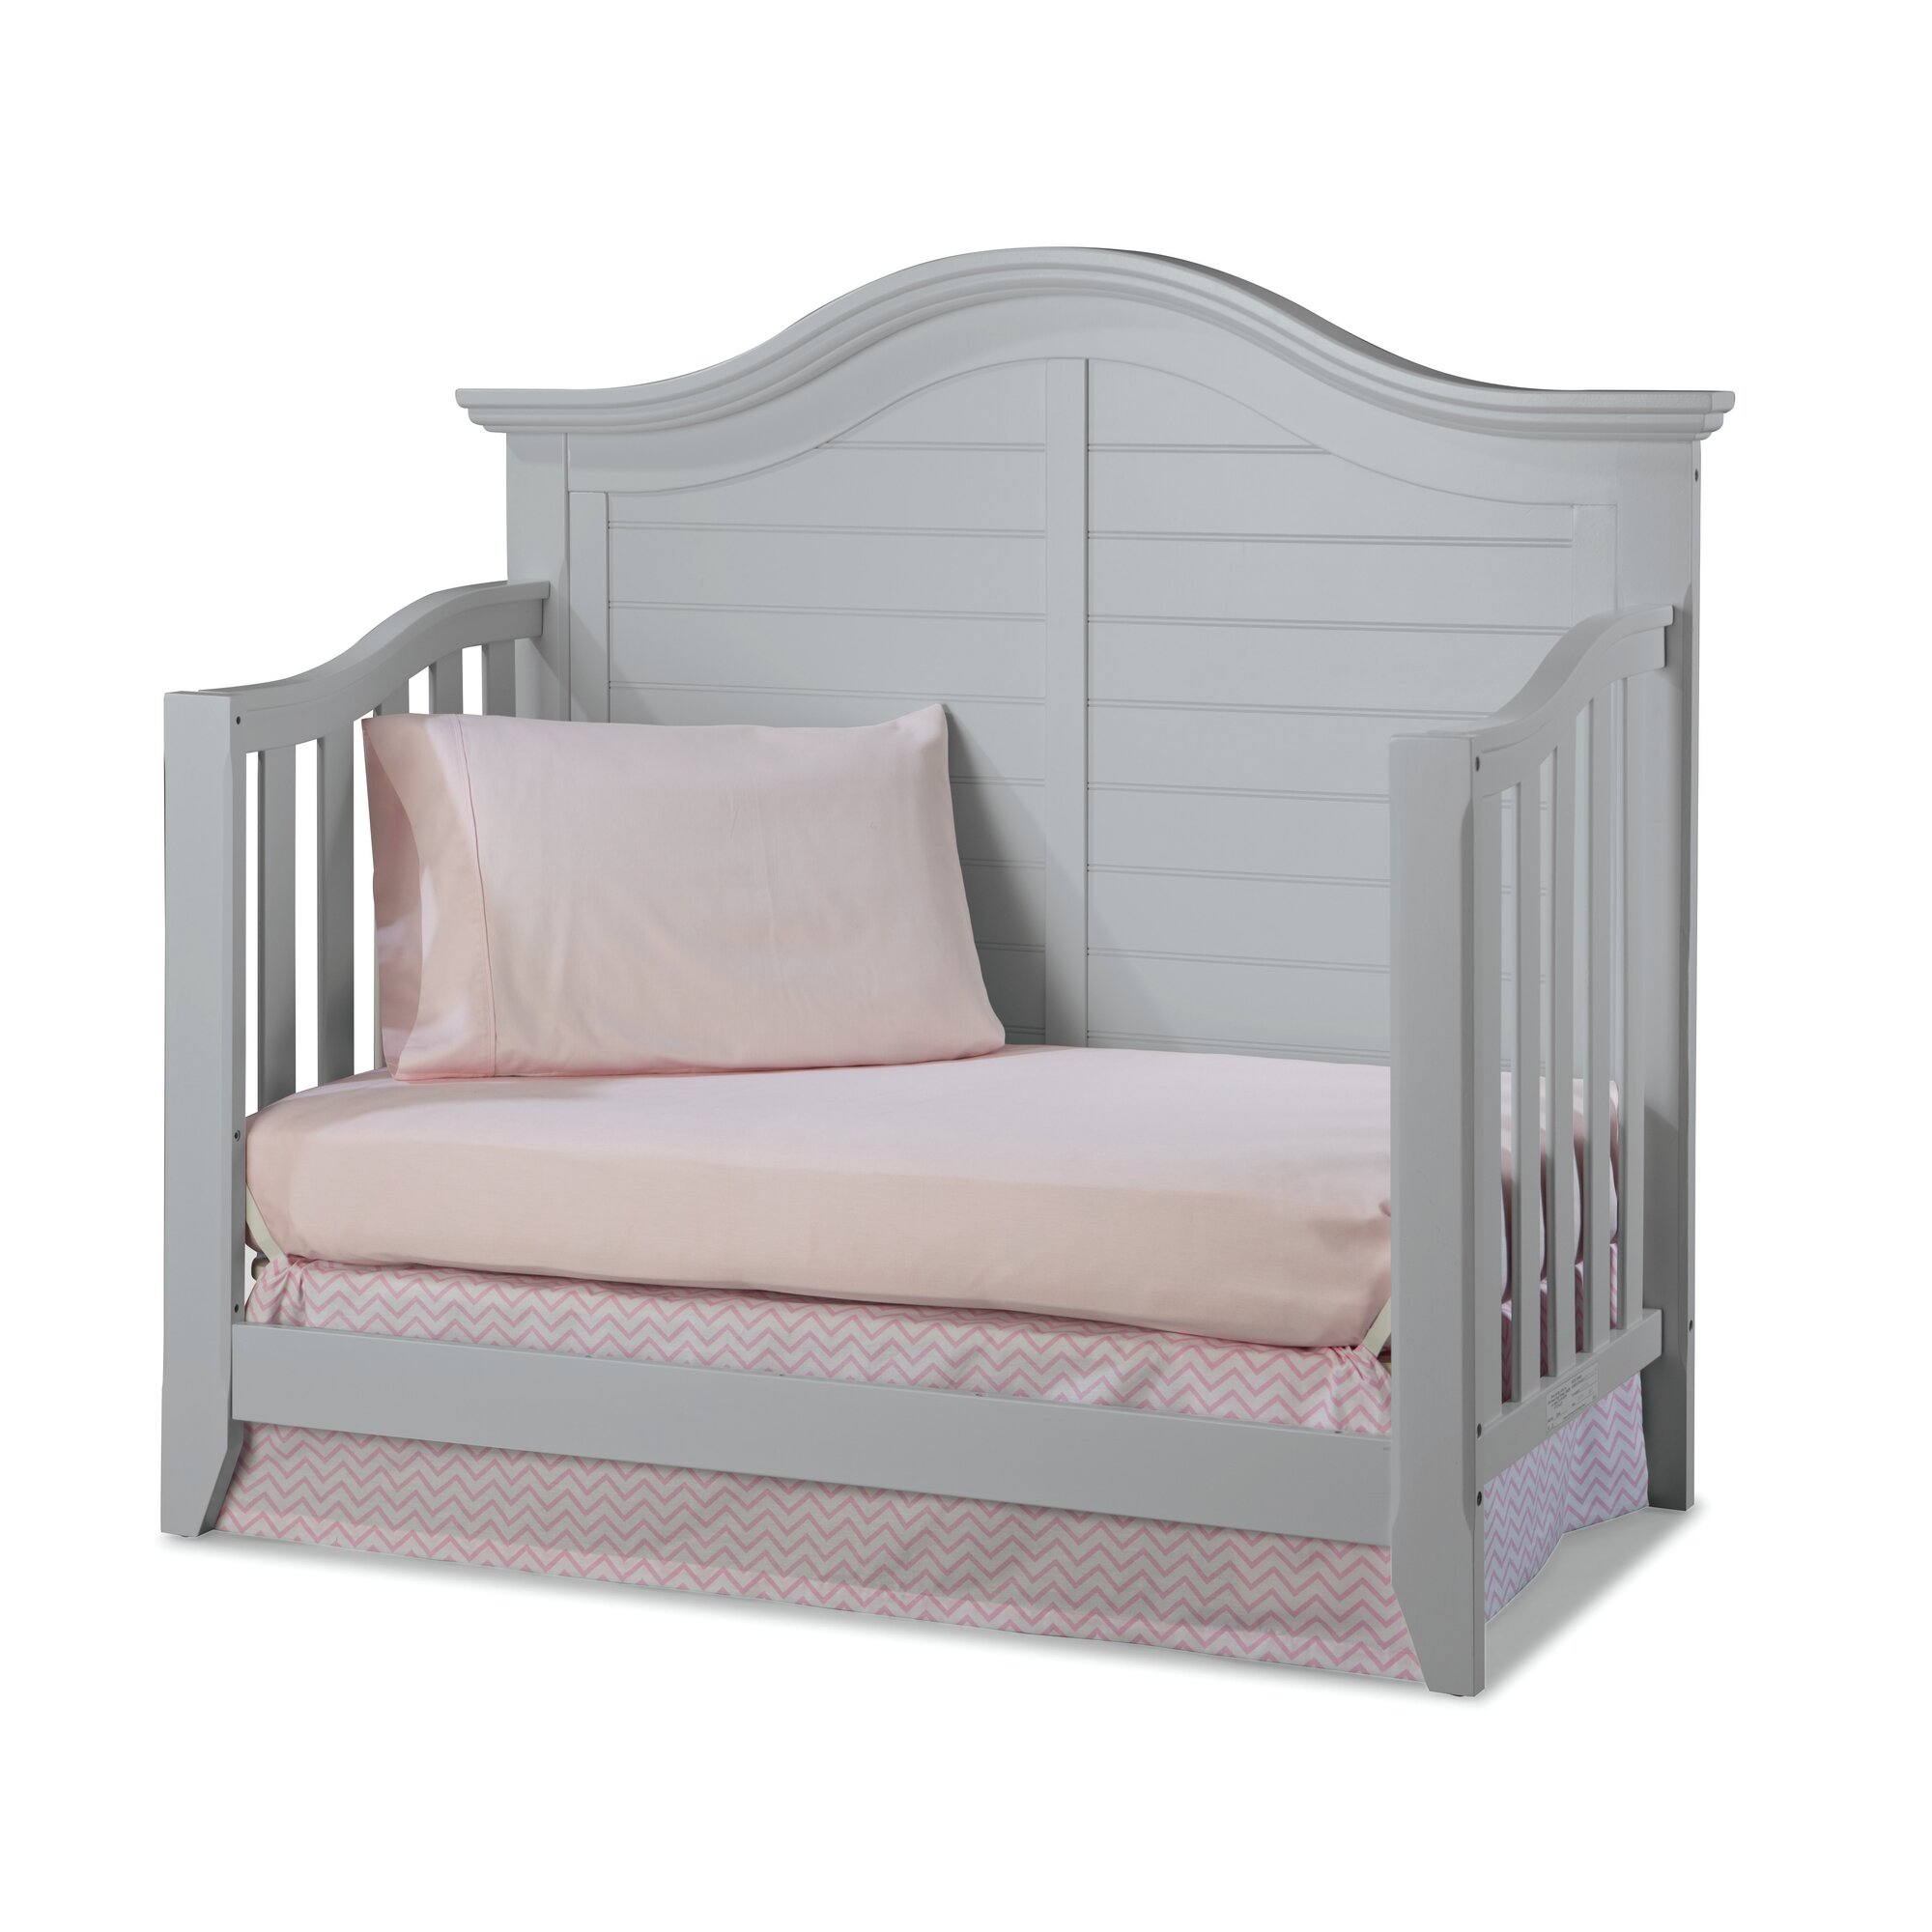 Bassett Crib Fabulous Baby Crib Bedroom Furniture Sets With Dressers Twimfest Baby Crib